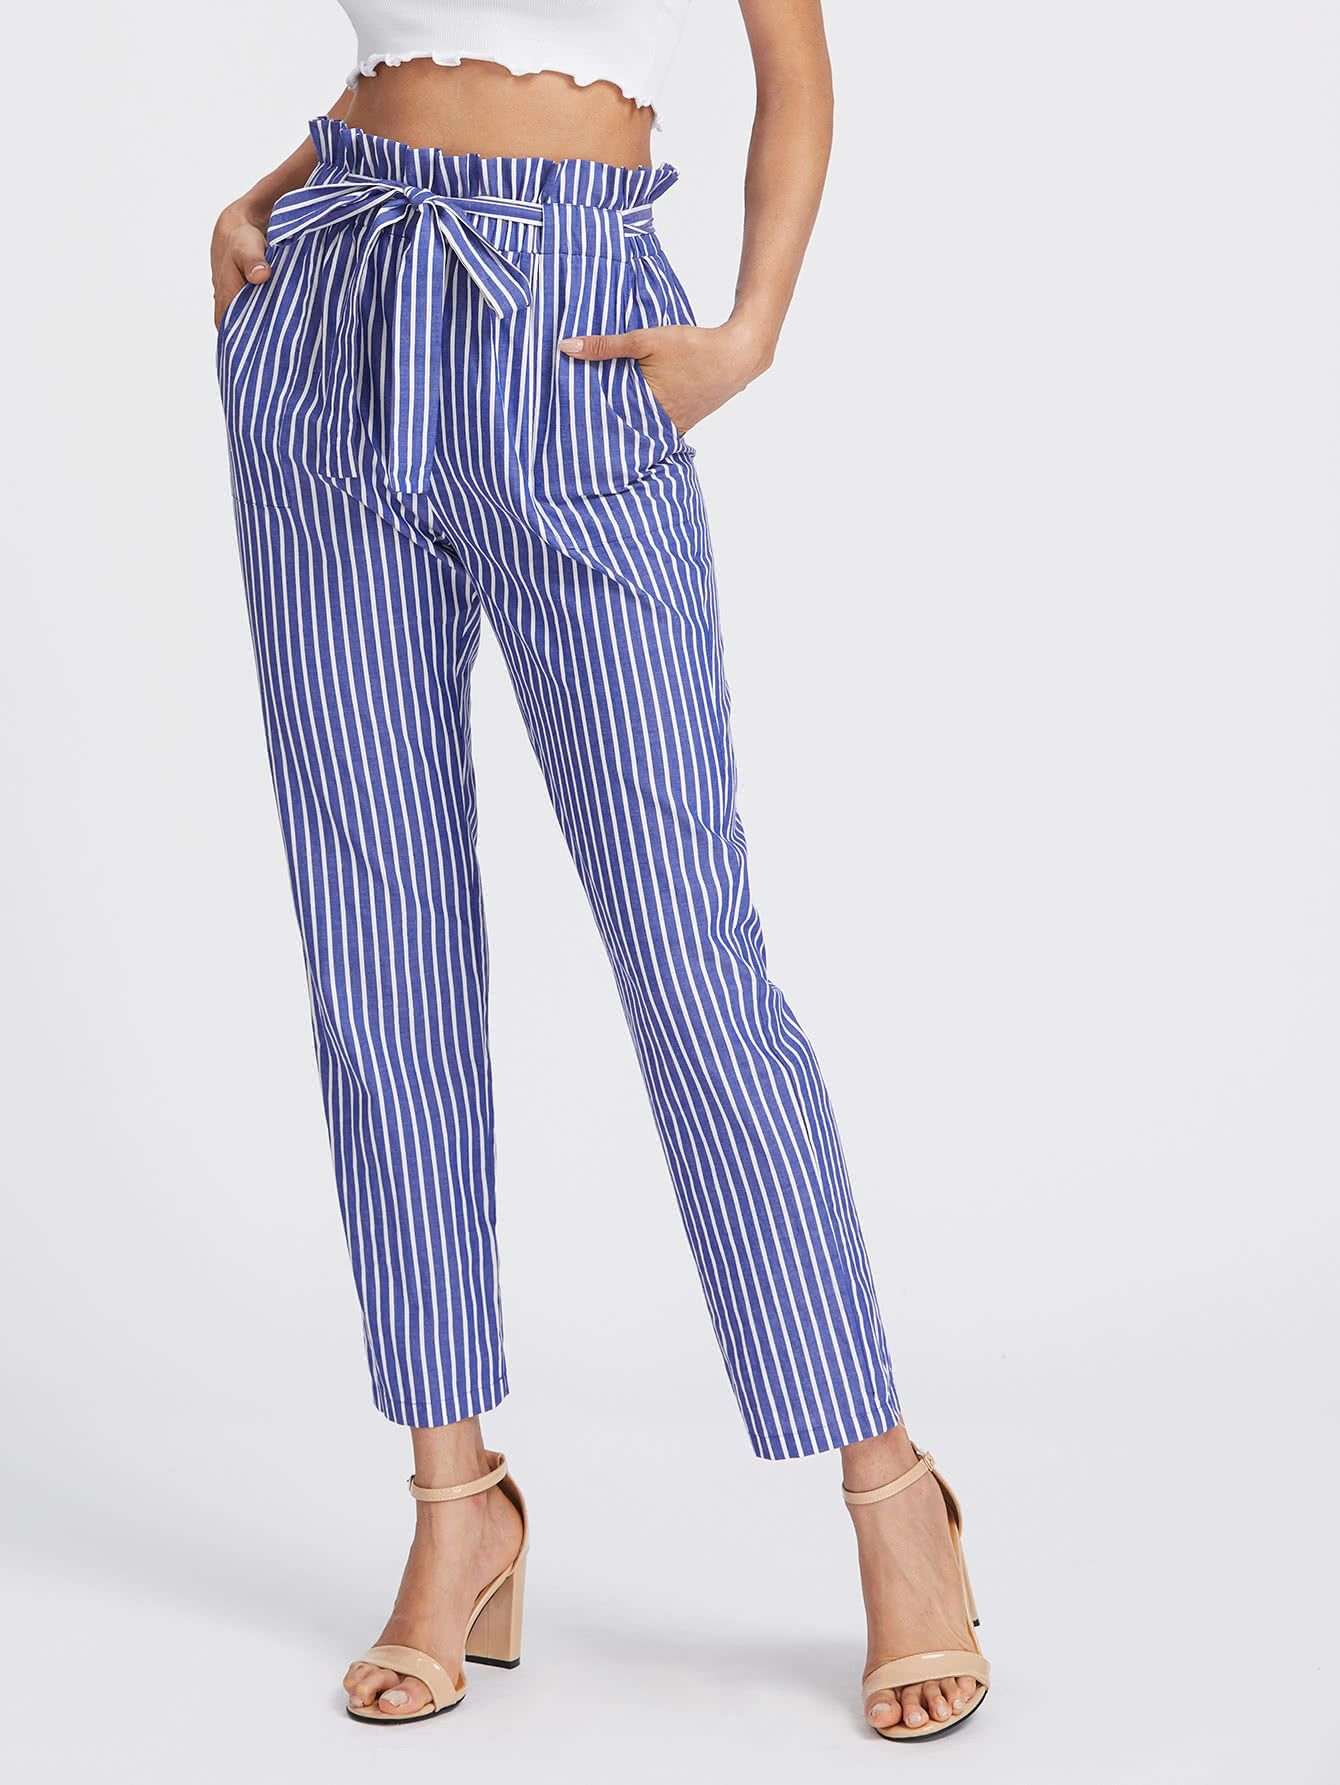 c710f9d3bb Shop Self Tie Frill Waist Pinstripe Pants online. SheIn offers Self Tie  Frill Waist Pinstripe Pants & more to fit your fashionable needs.